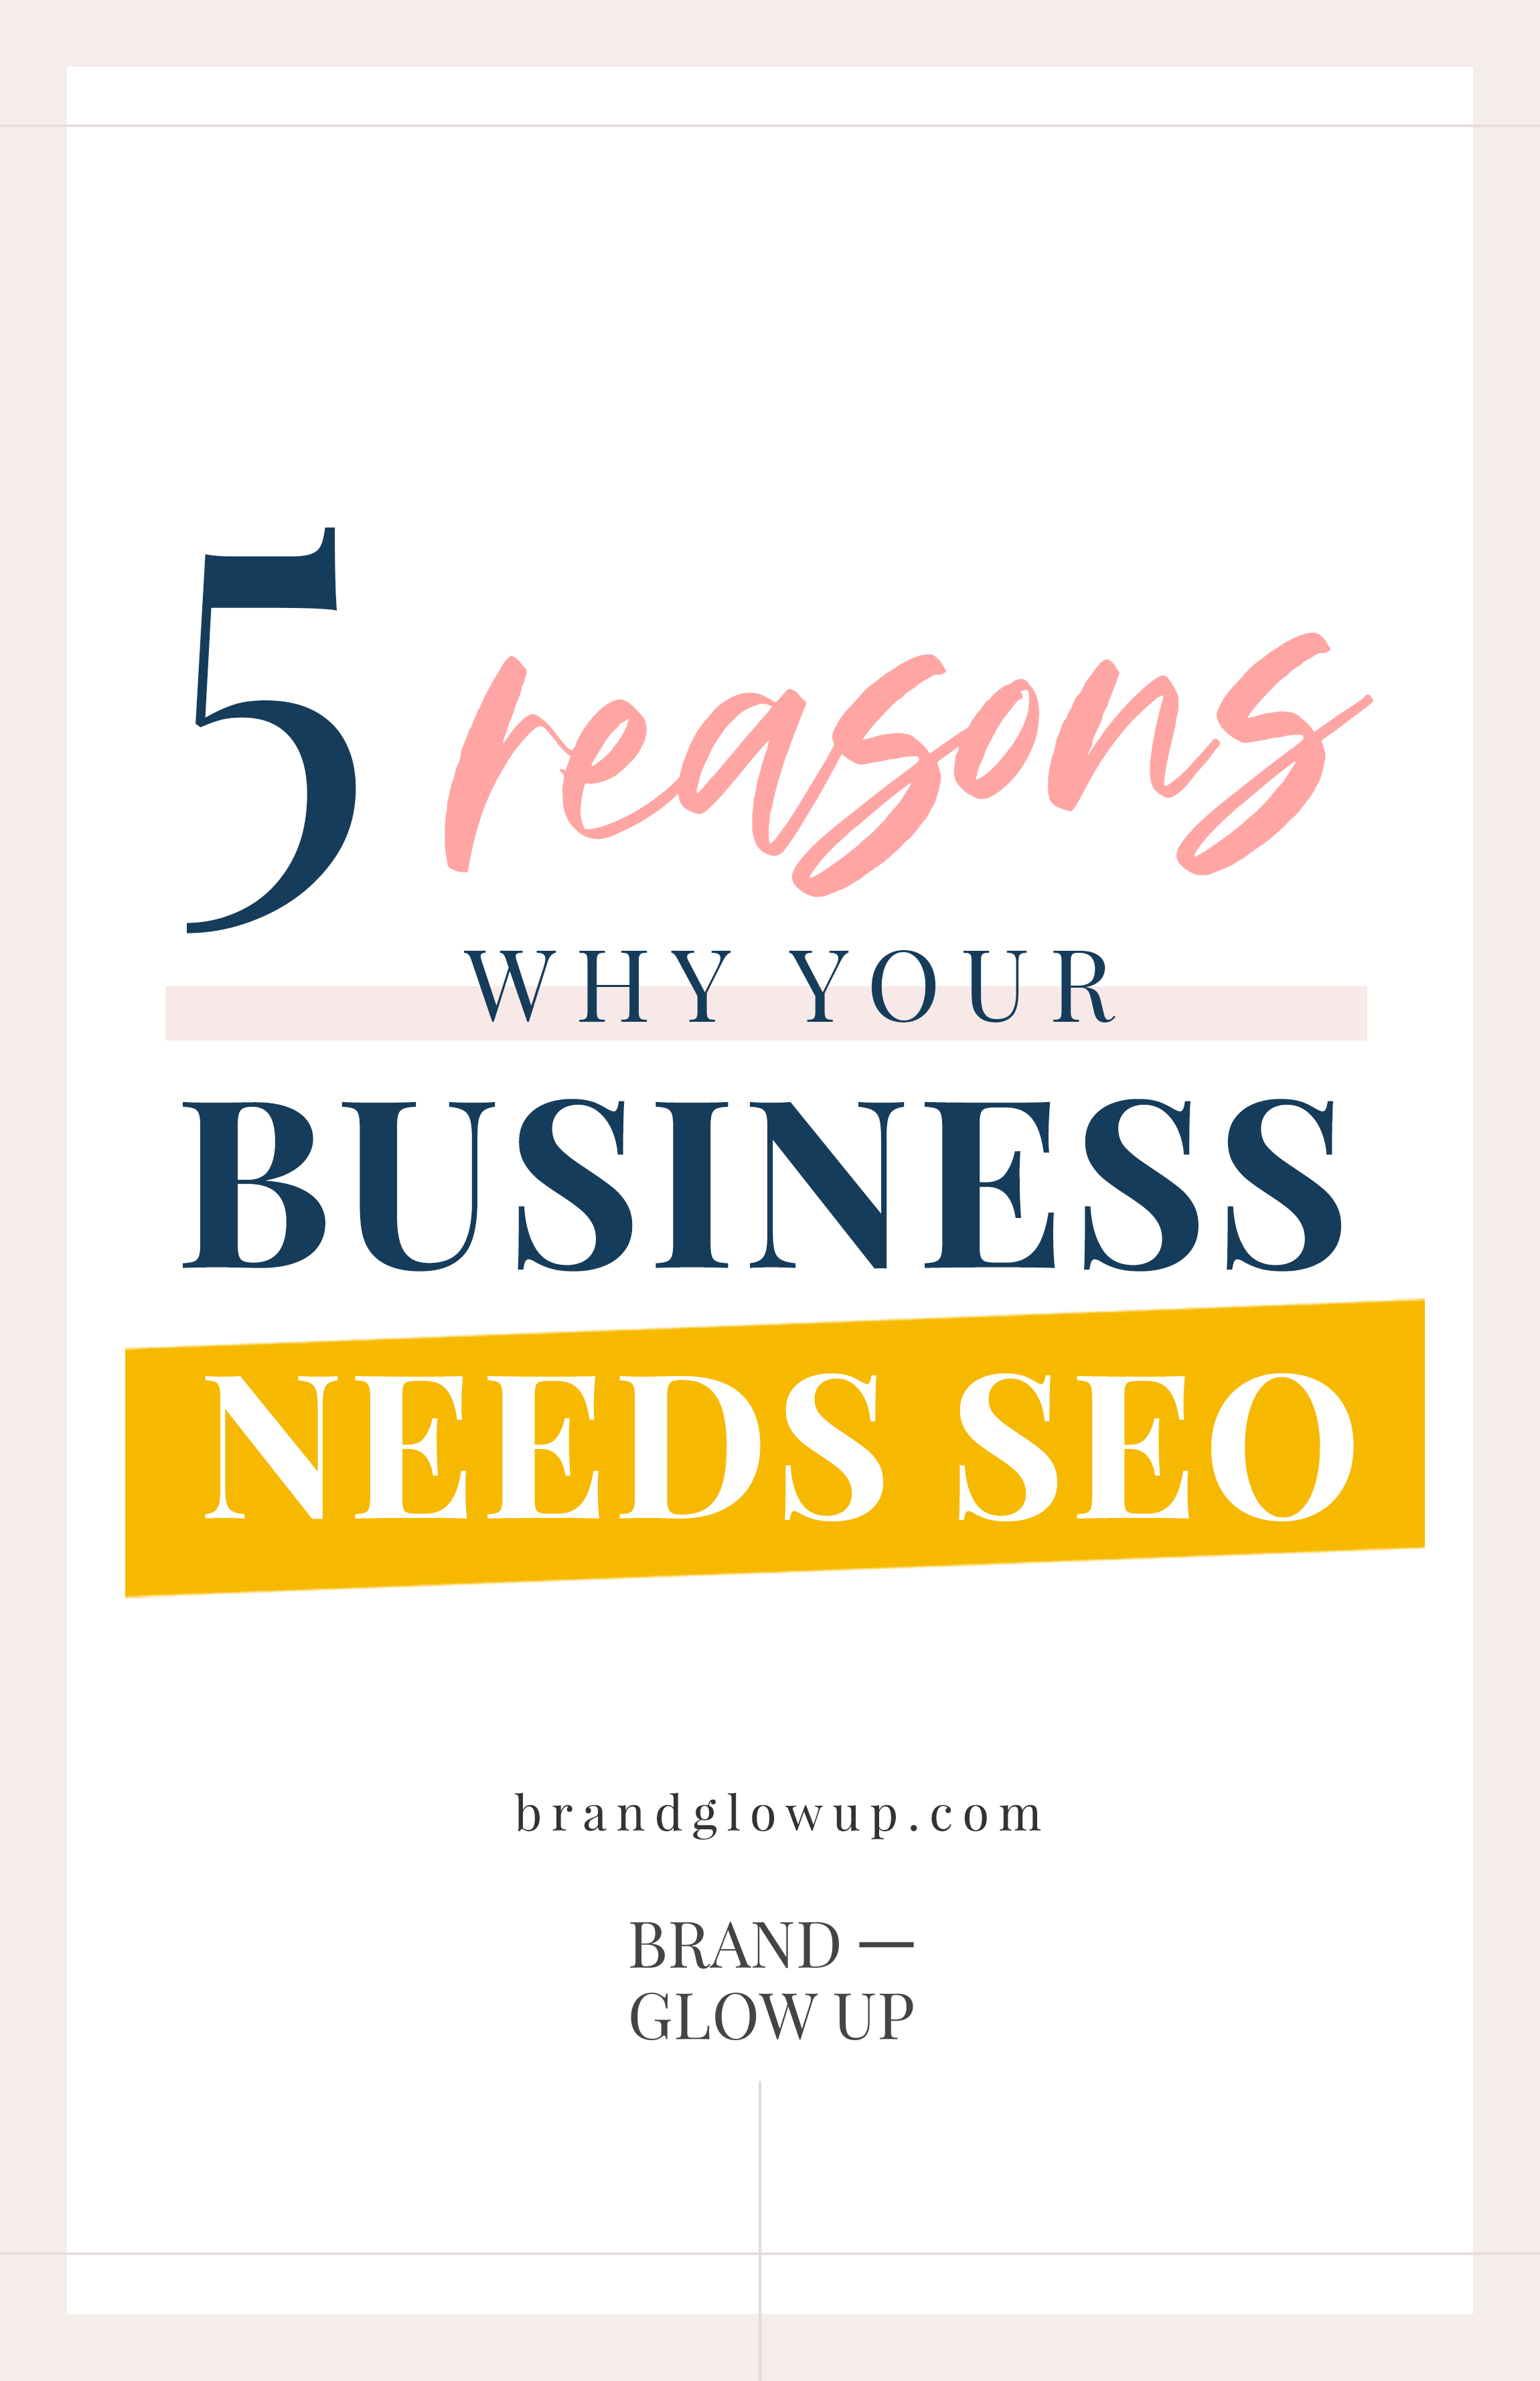 Why Your Business Need SEO